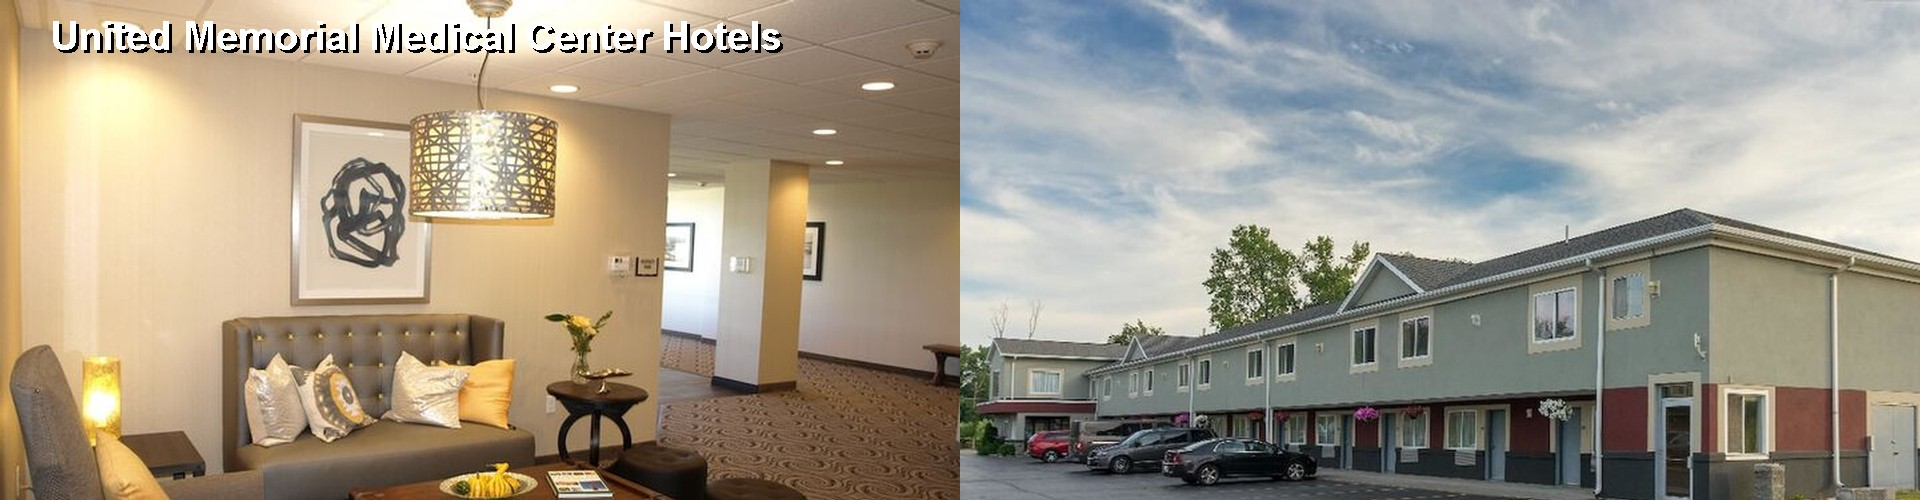 5 Best Hotels near United Memorial Medical Center